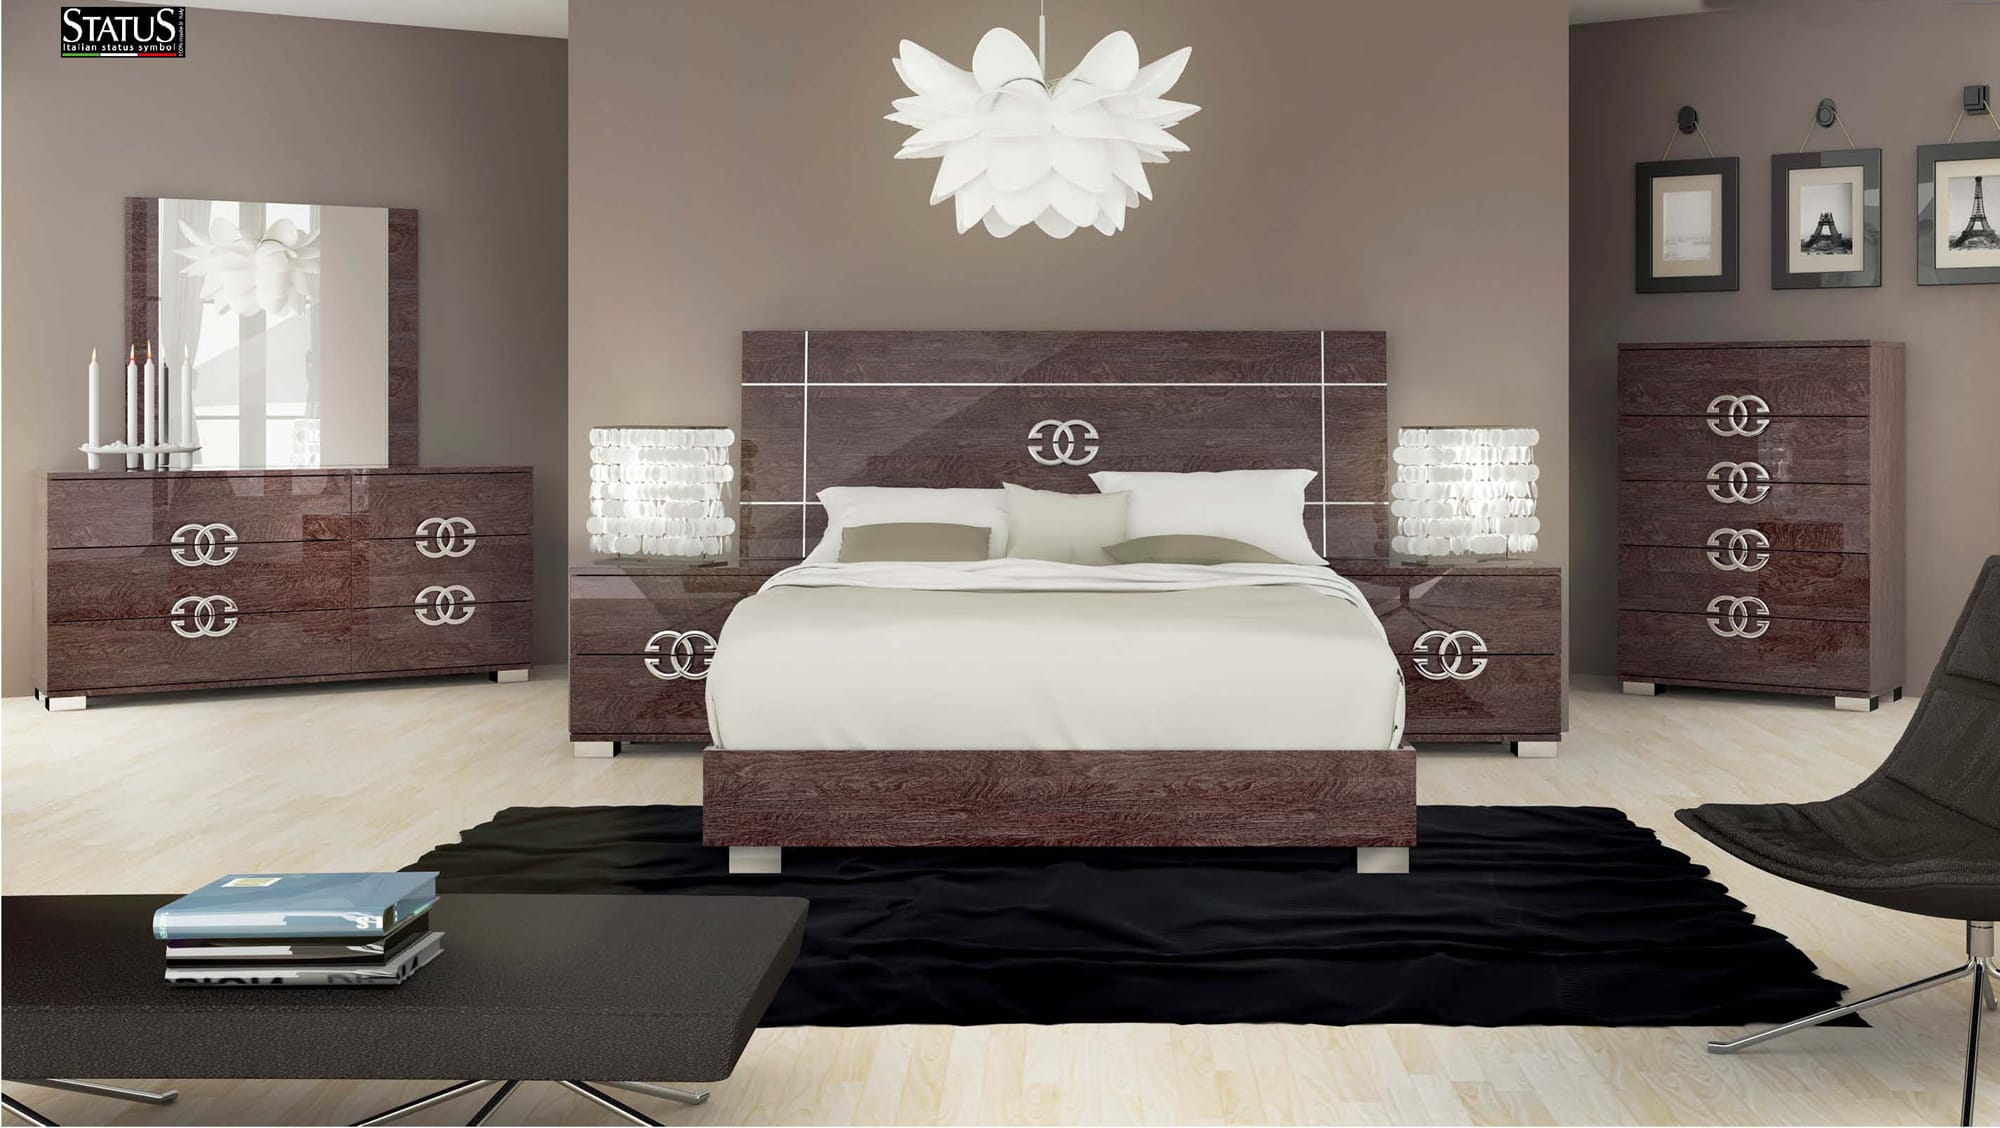 Prestige Classic Status Bedroom Set by ESF